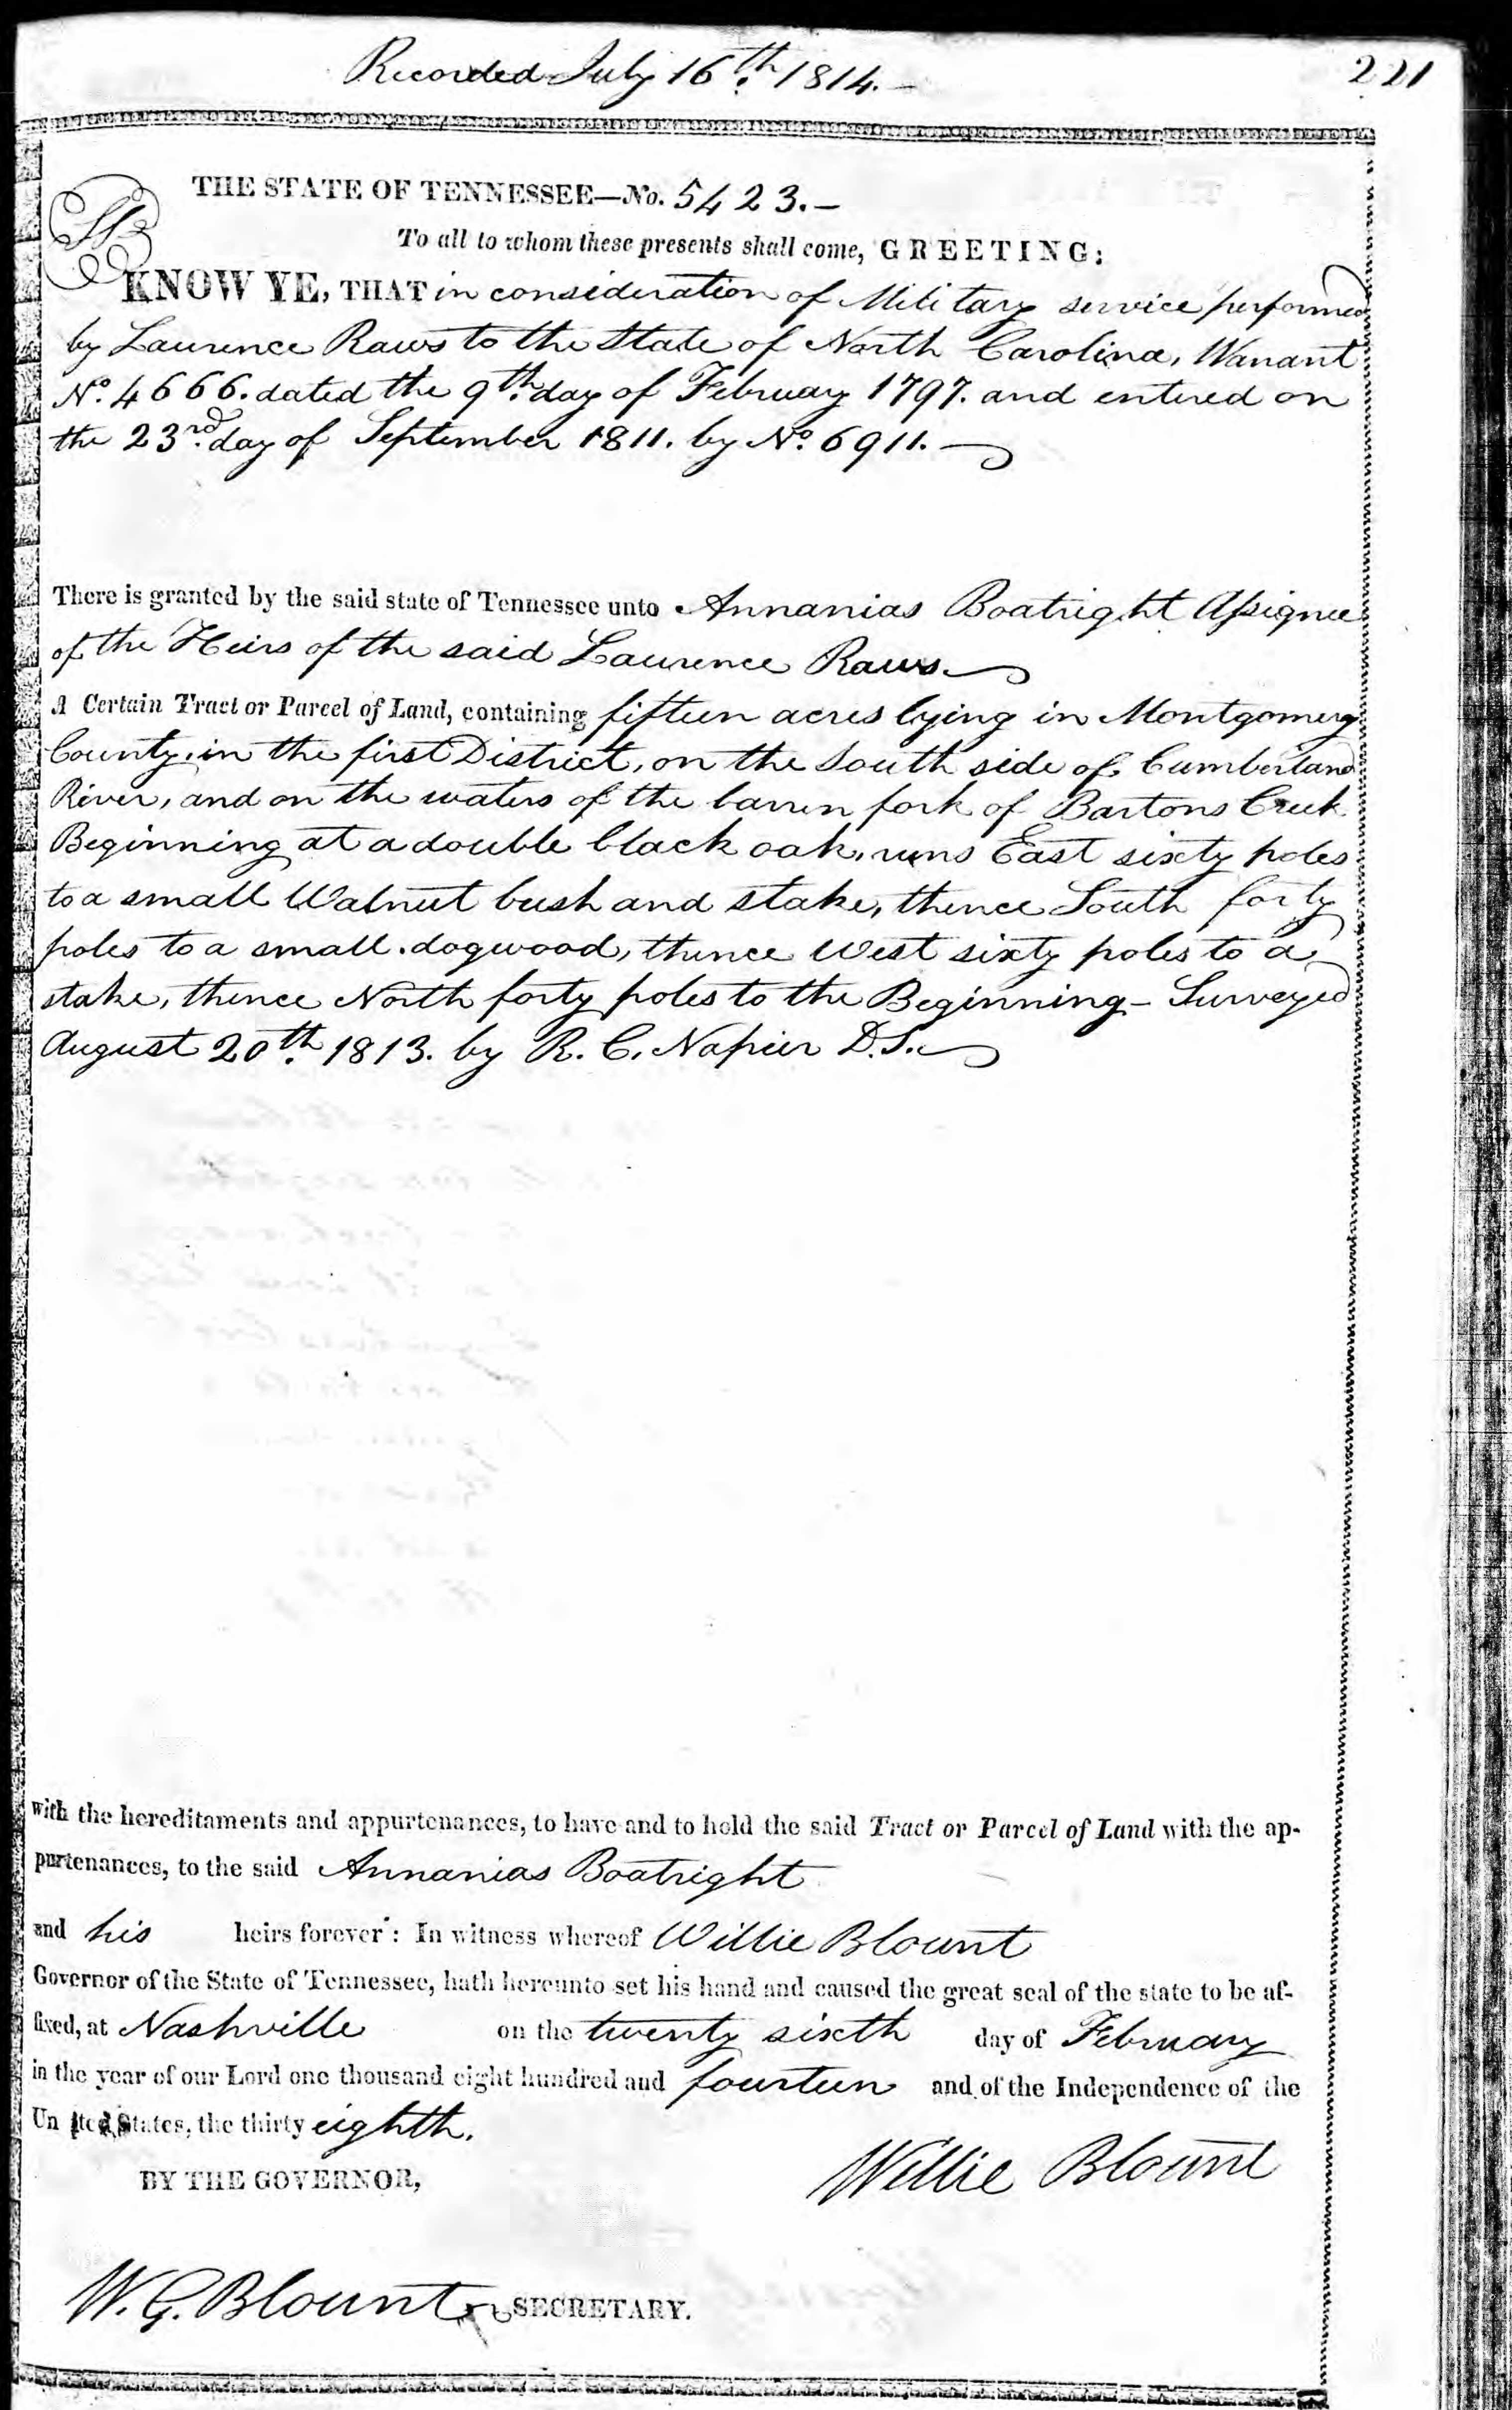 Ananias Boatwright Land Record 1814: